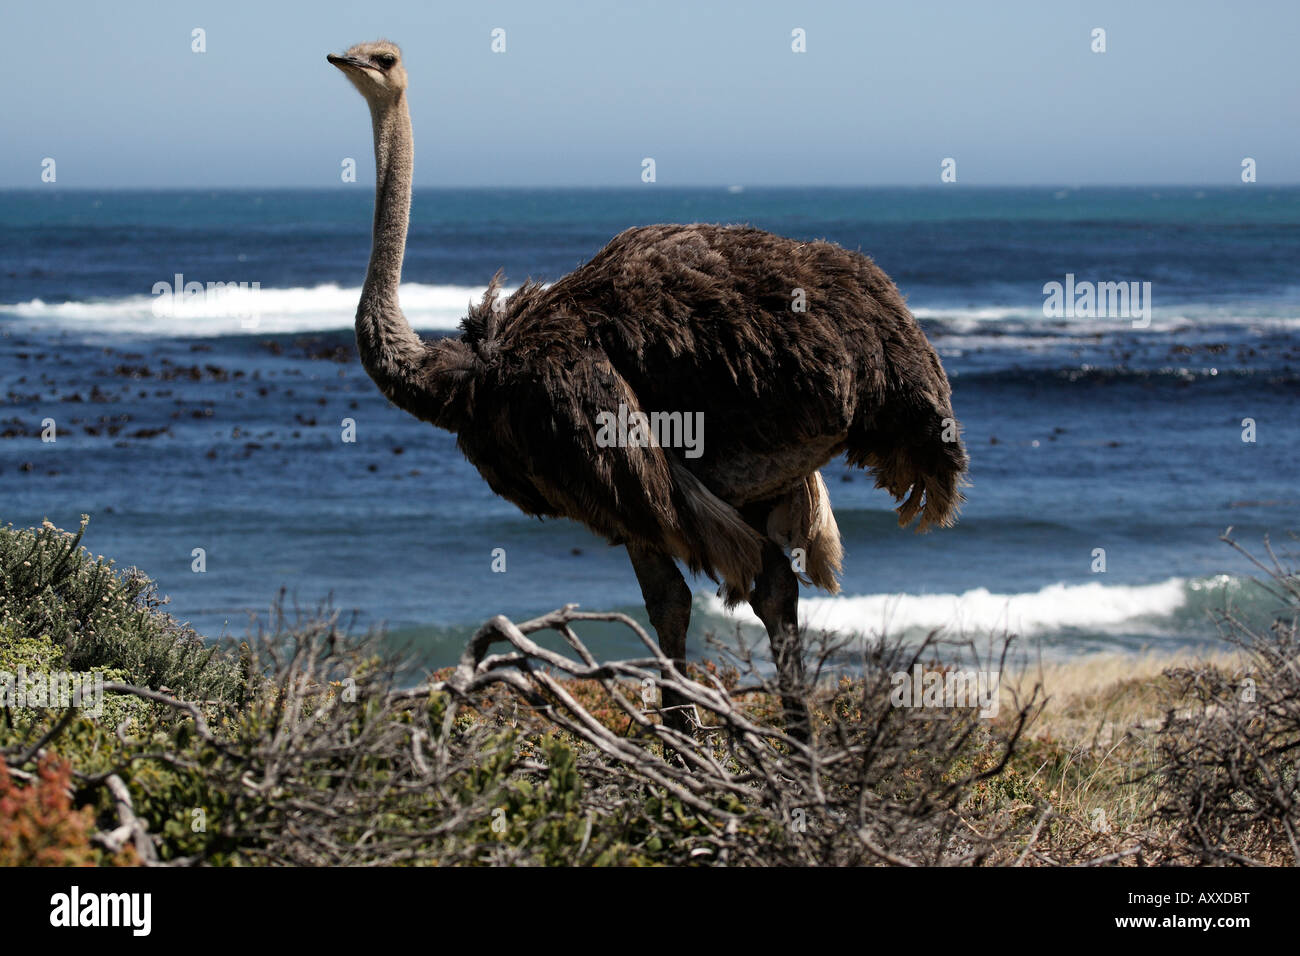 southern ostrich struthio camelus cape of good hope park cape town western cape province south africa - Stock Image